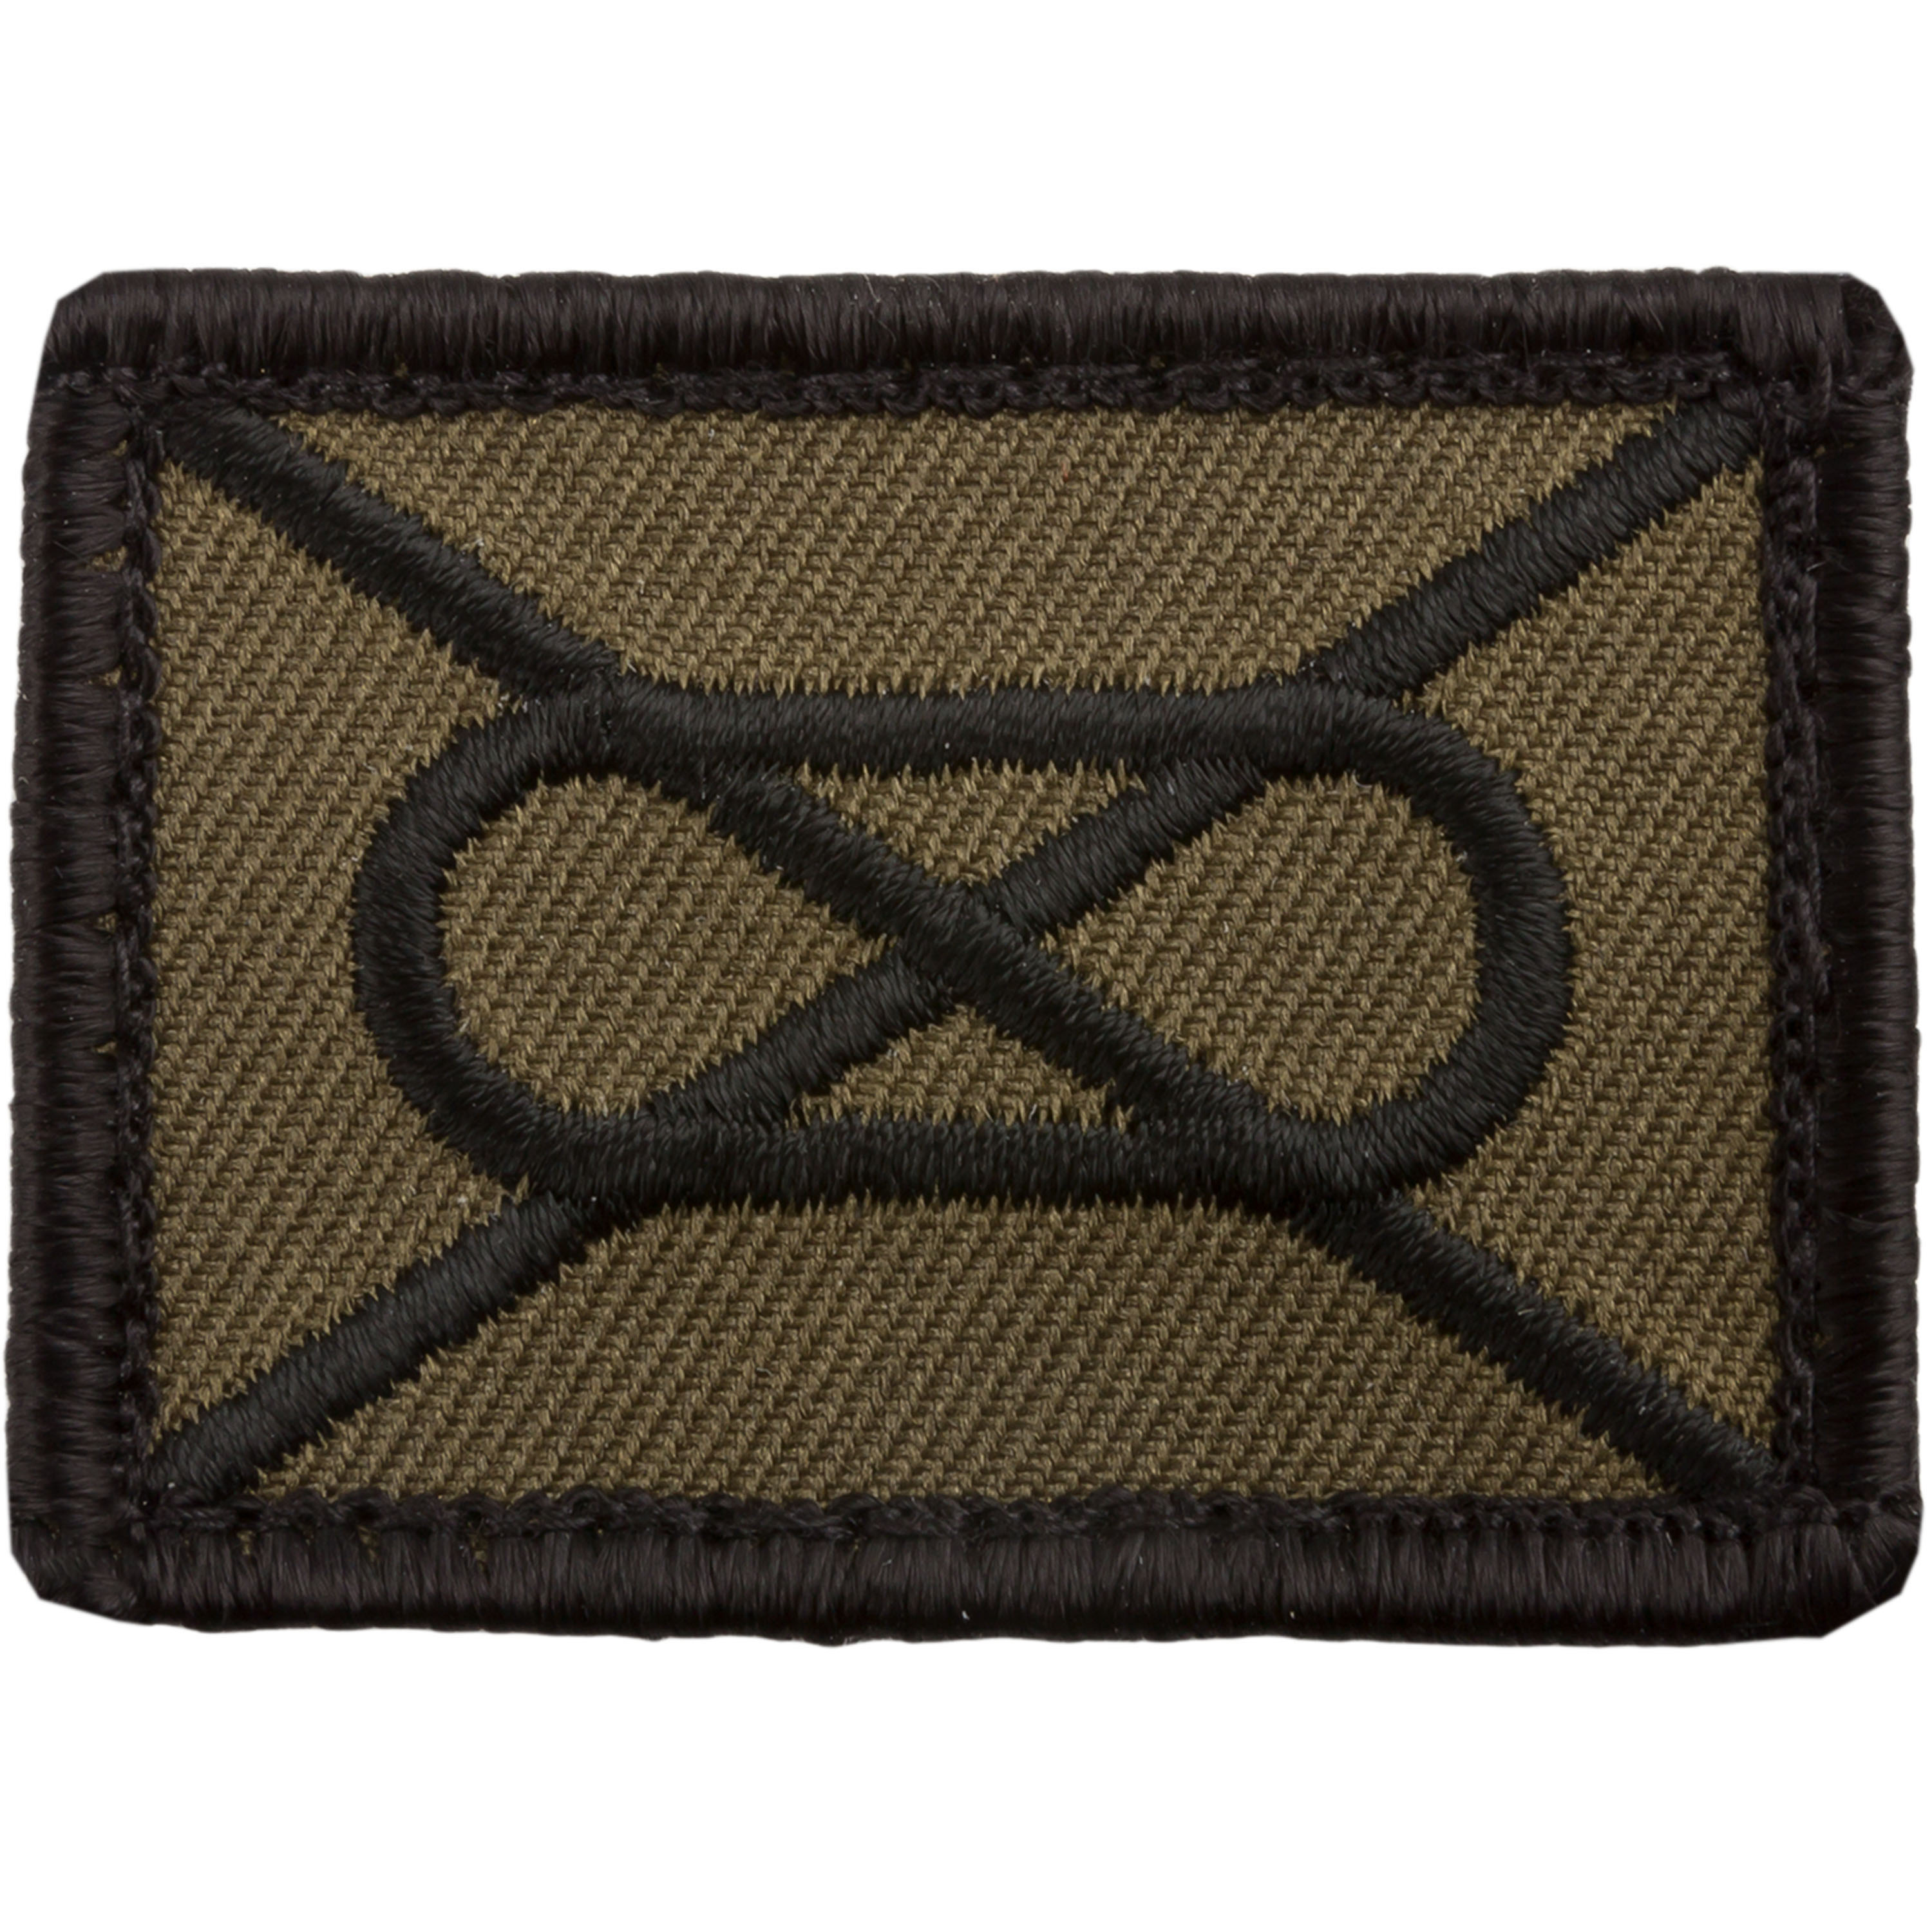 Café Viereck Patch Panzergrenadier